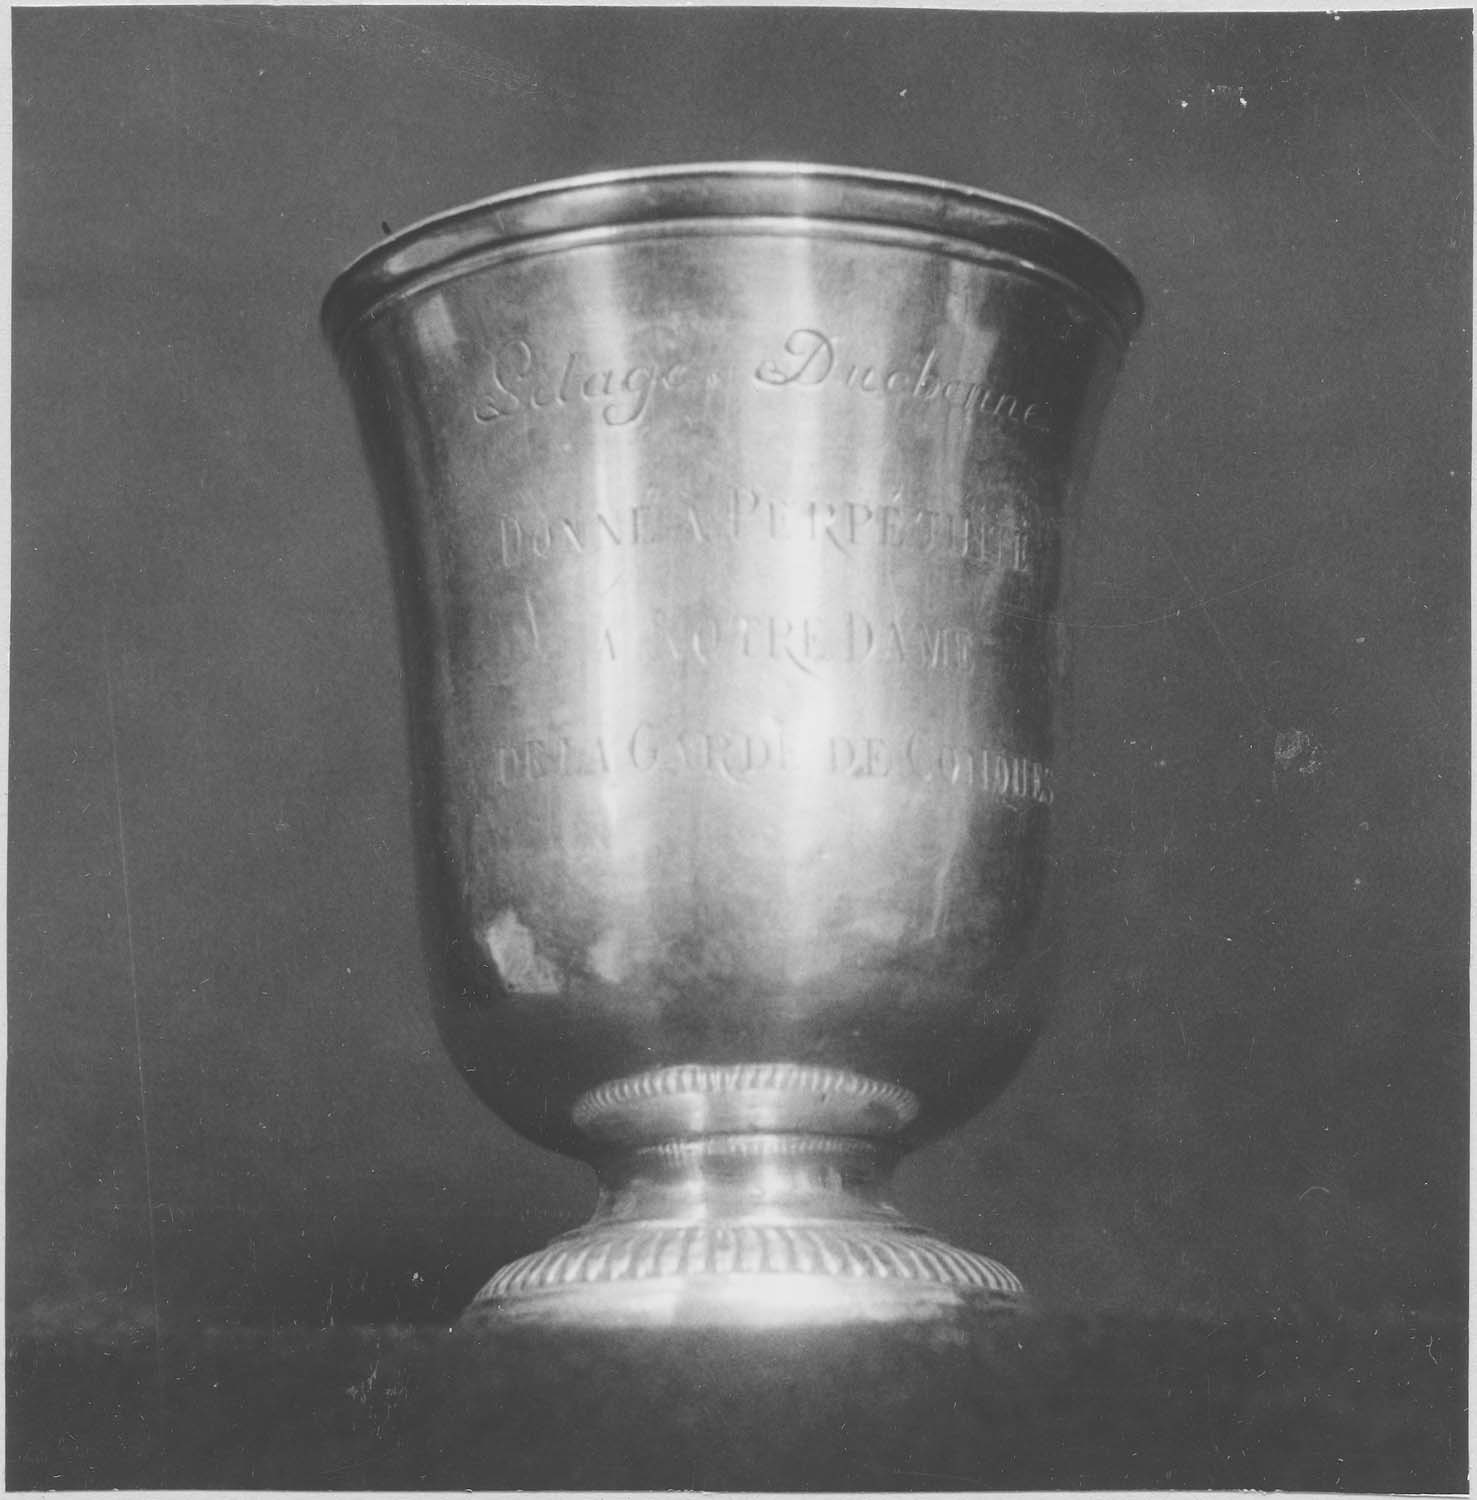 gobelet (timbale)